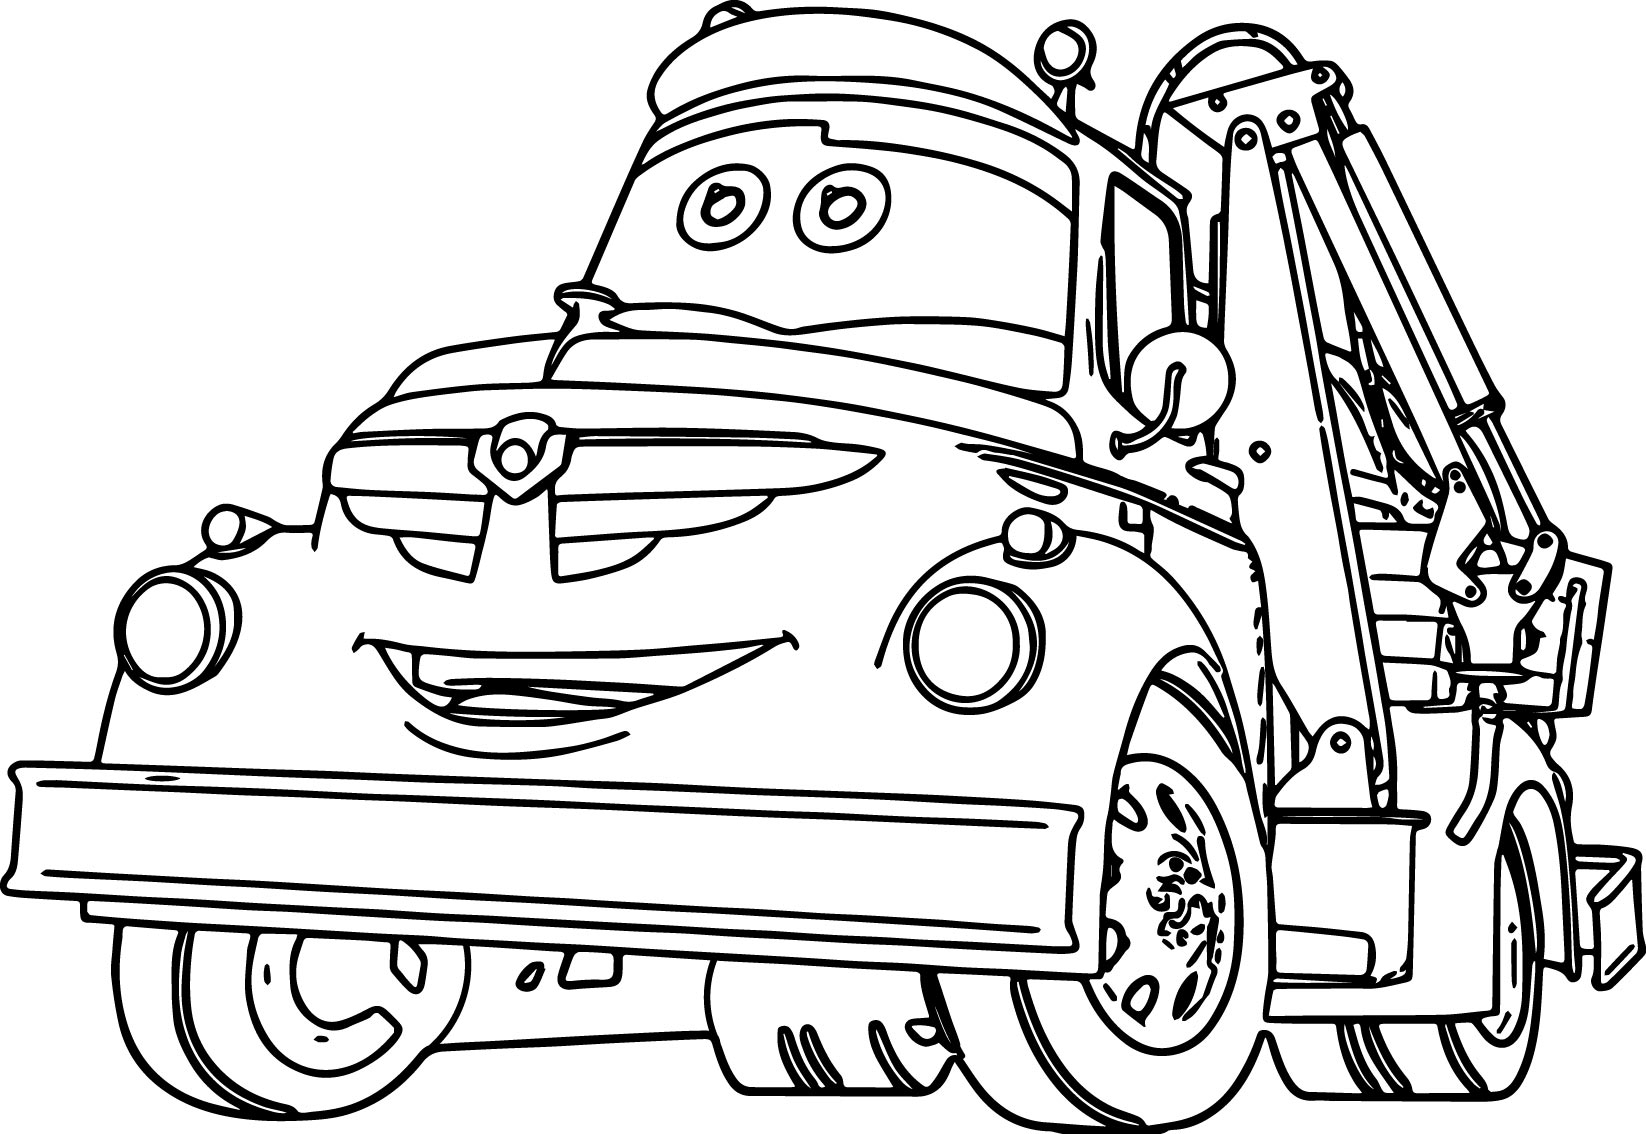 Chug Disney Car Wrecker Coloring Pages